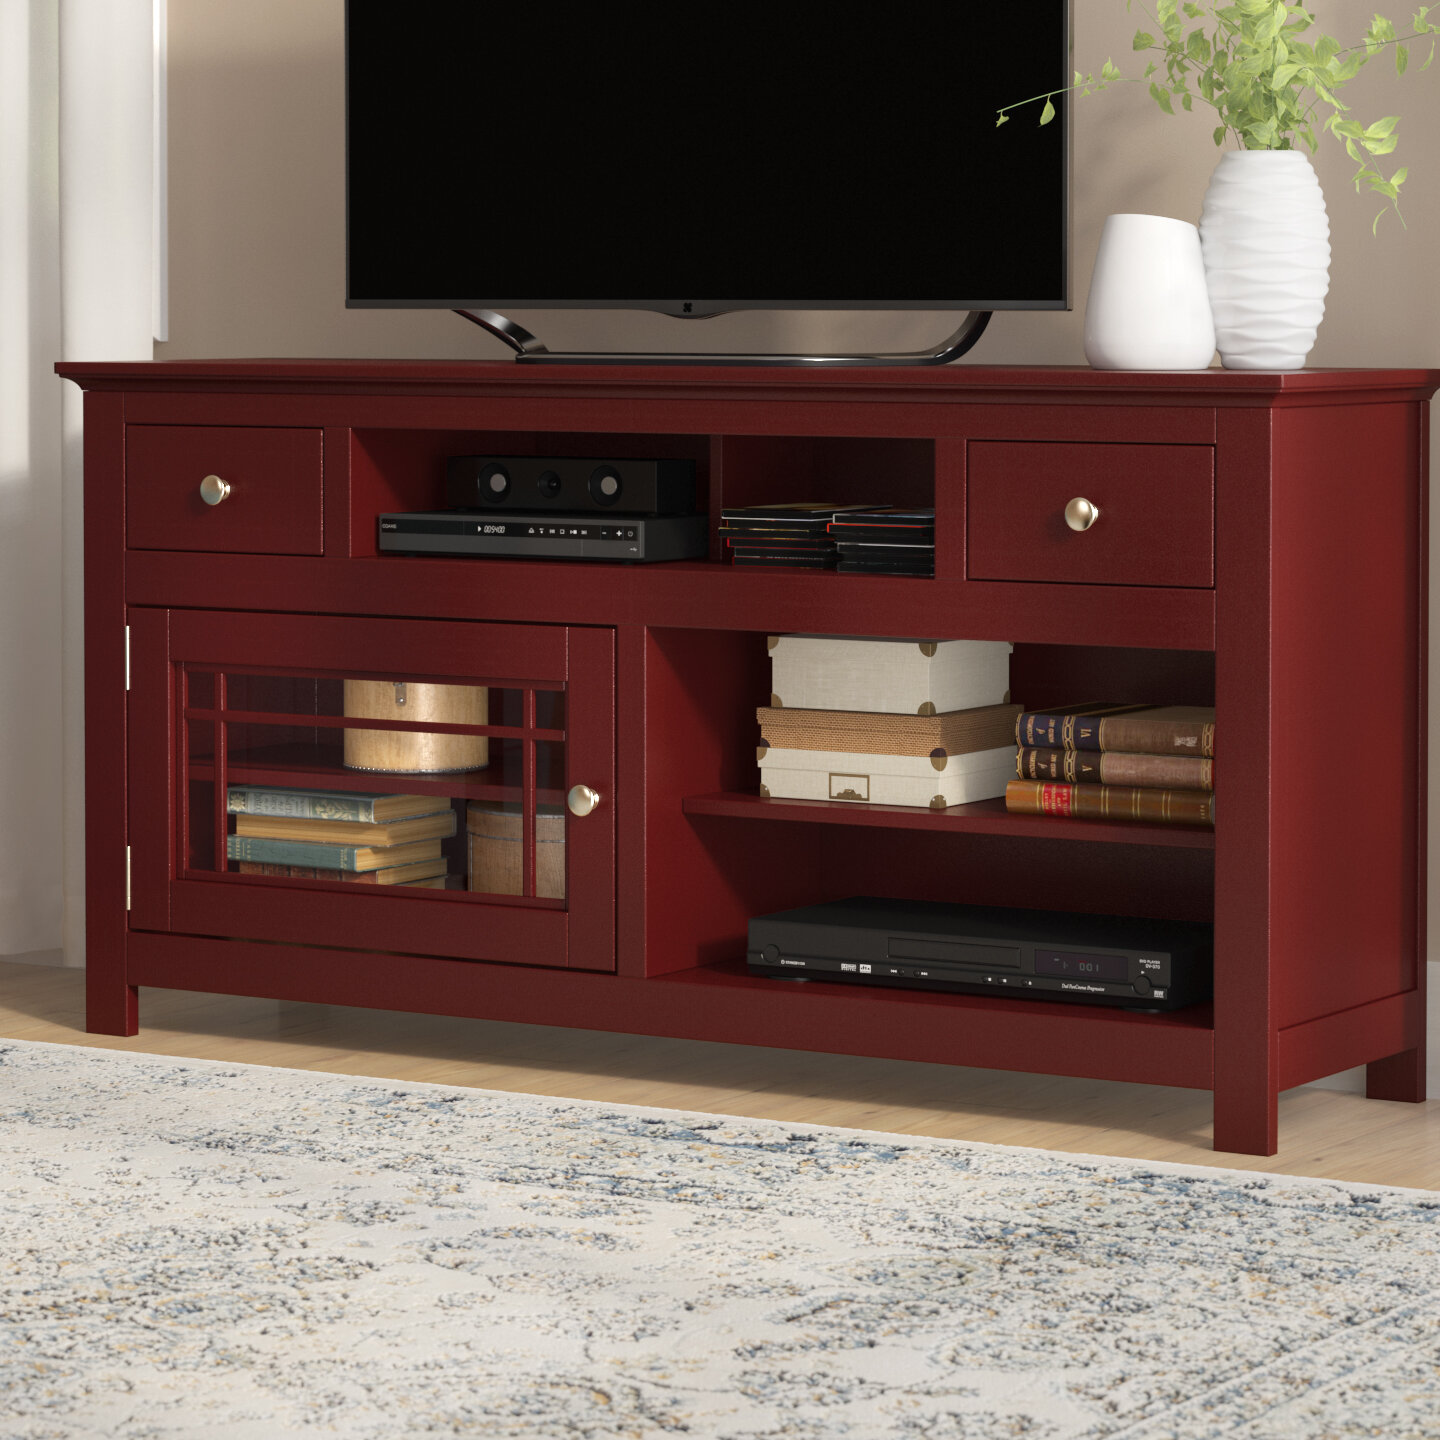 Darby Home Co Julee Tv Stand For Tvs Up